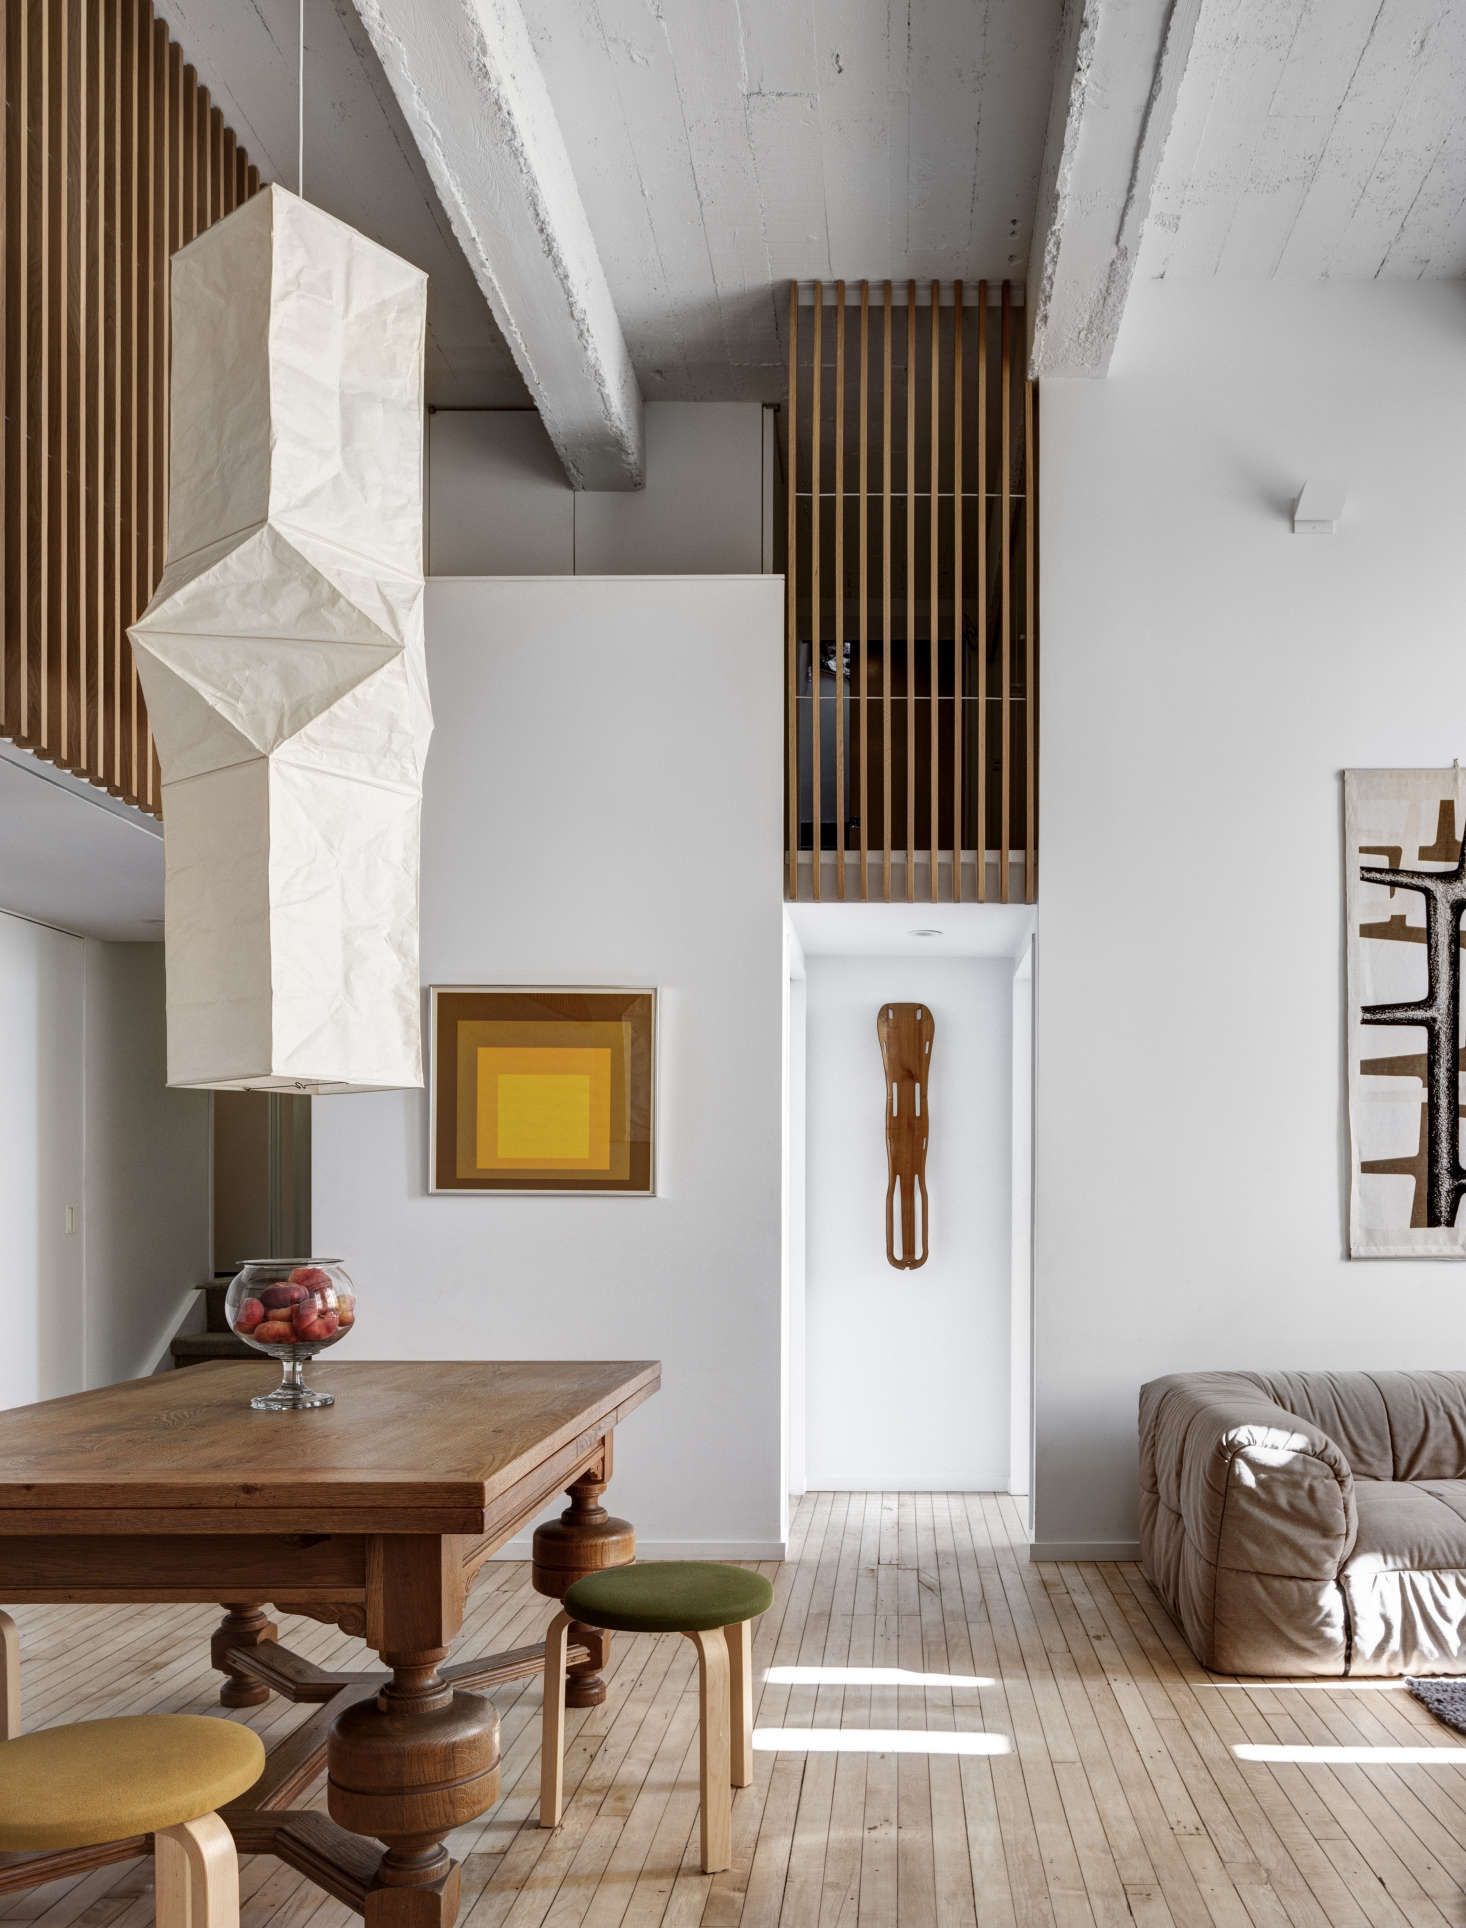 An Akari Ceiling Lamp, Model L5 from the Noguchi Museum Store hangs in the lofty living area of this Brooklyn apartment. Photograph by Bruce Buck, from An Eclectic Apartment Inspired by Japanese Storage Chests in Cobble Hill, Brooklyn.